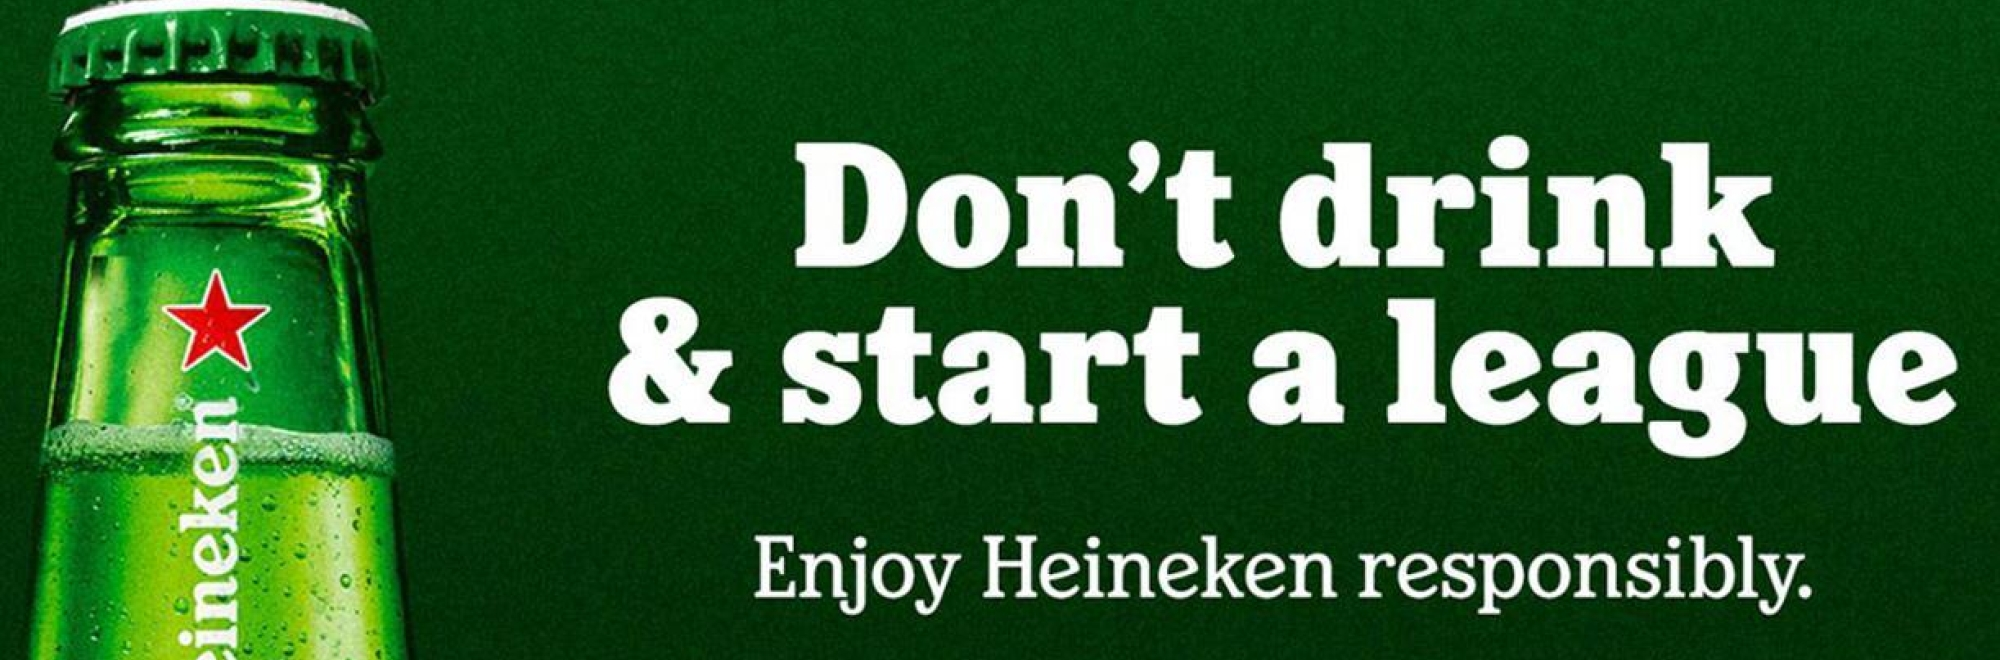 Latest campaigns for Heineken and FIFA reviewed by Engine Mischief's Jack Hutchinson